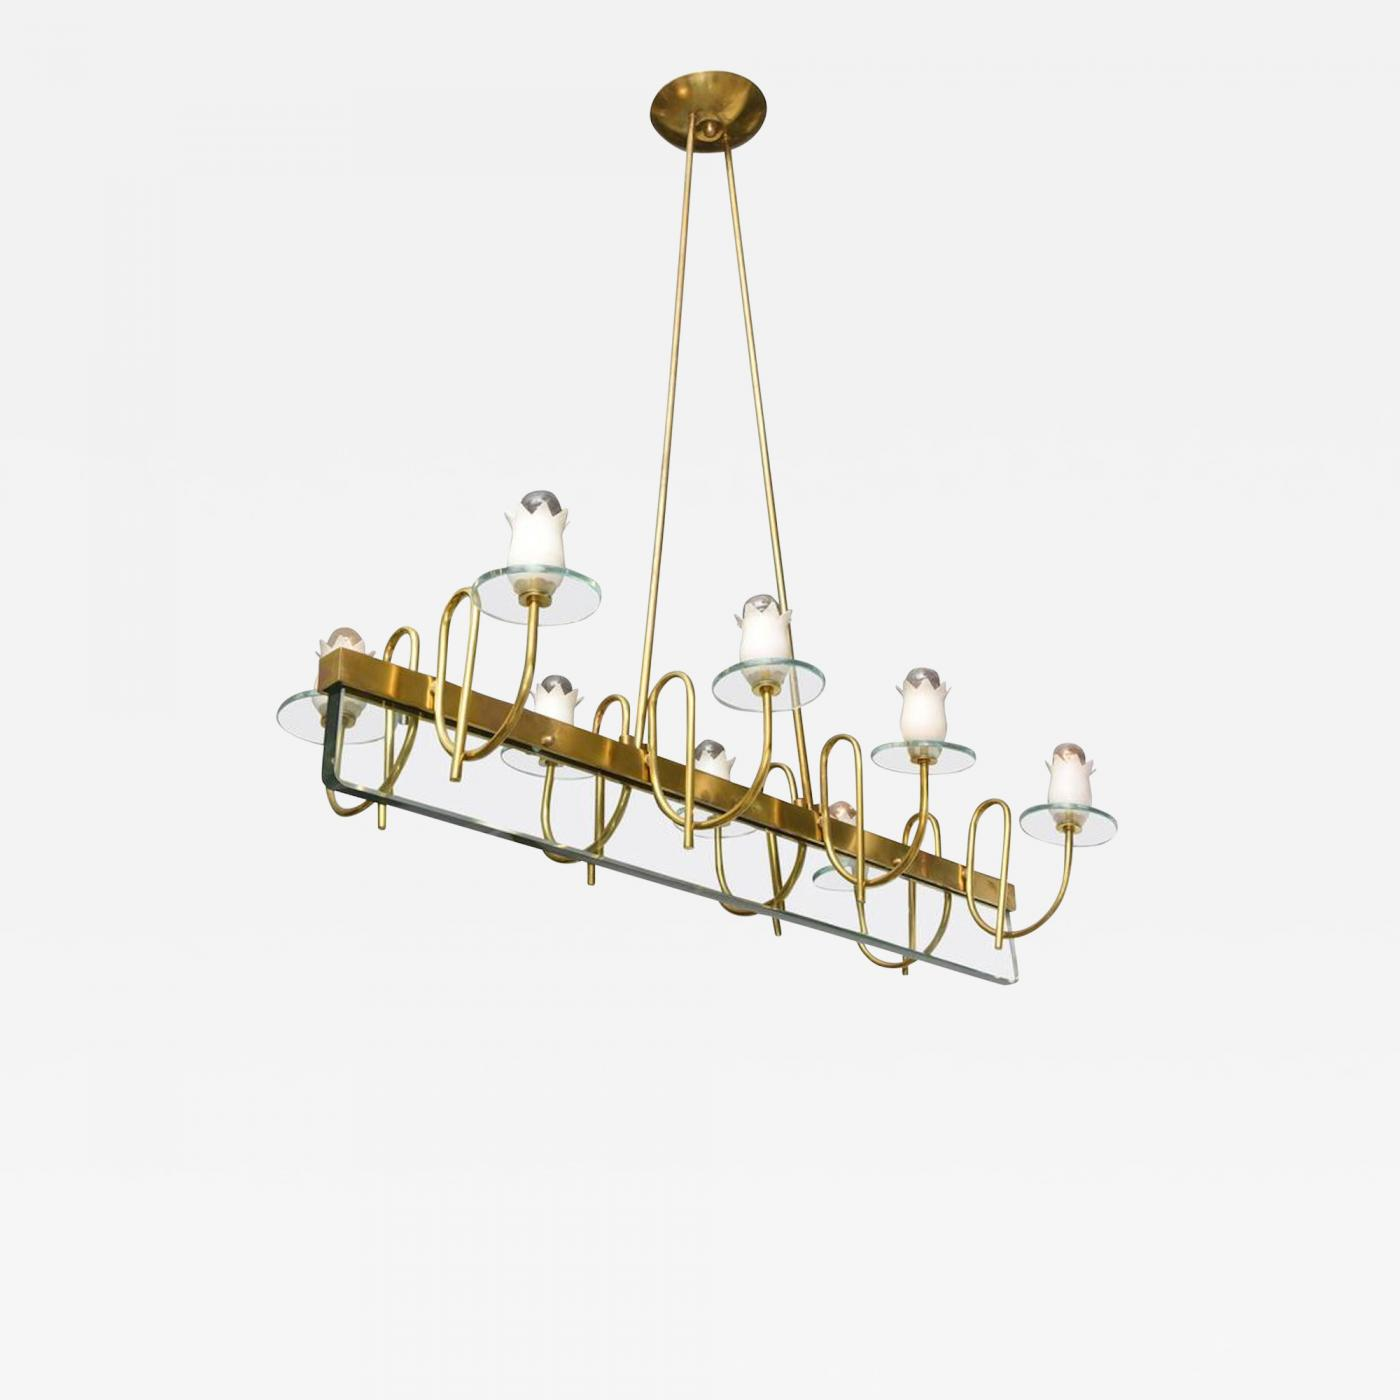 Listings Furniture Lighting Chandeliers And Pendants Fontana Arte Mid Century Modern Brass Glass